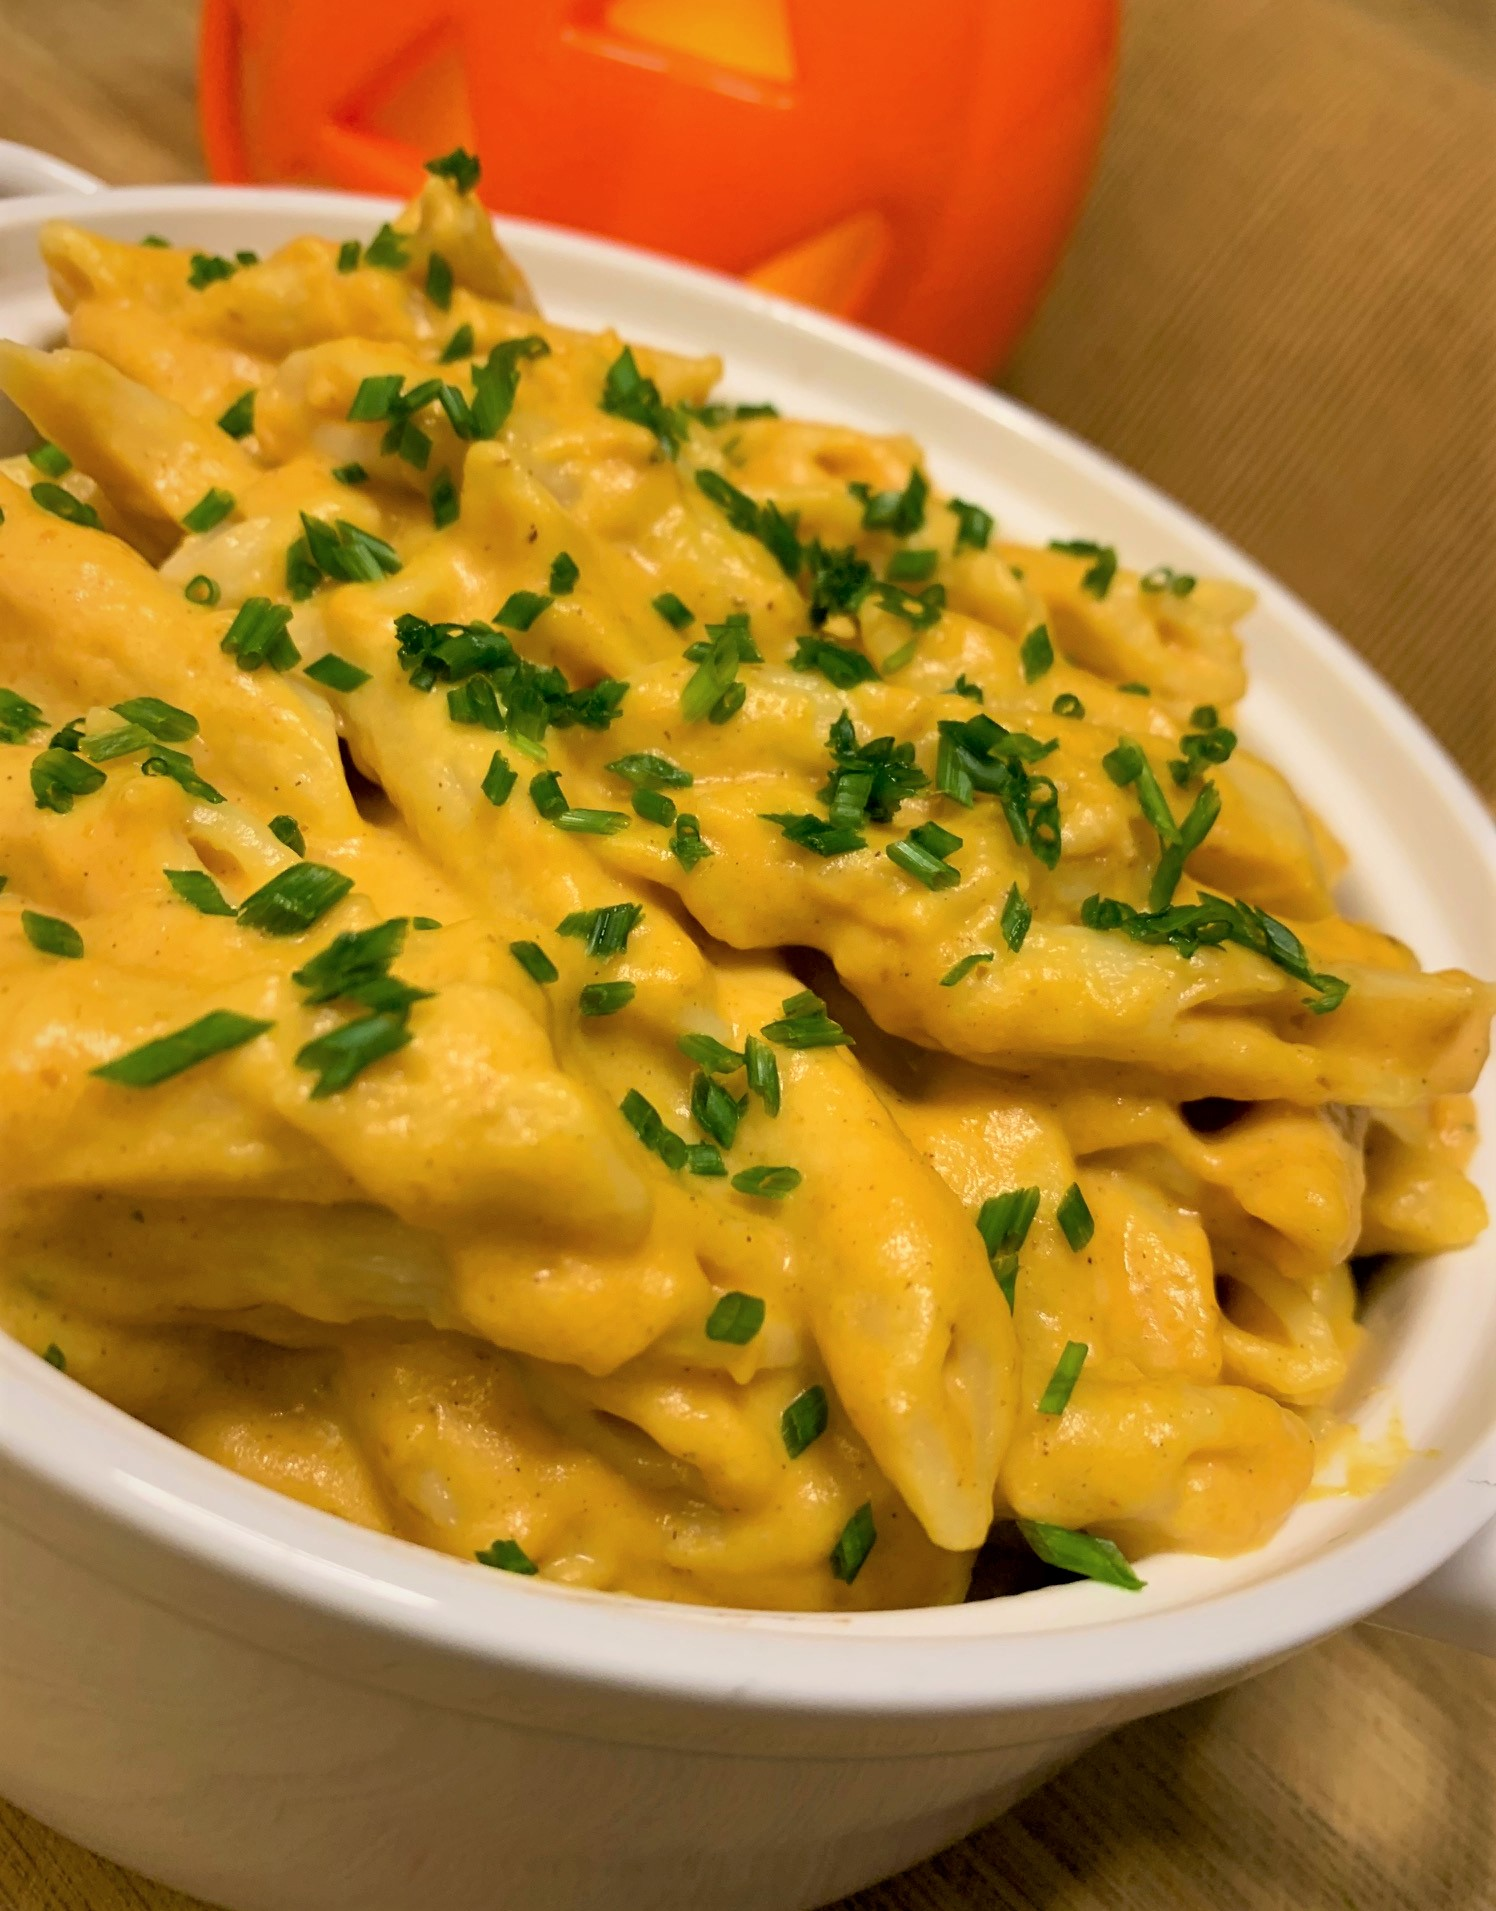 Our completed Pumpkin Mac & Cheese